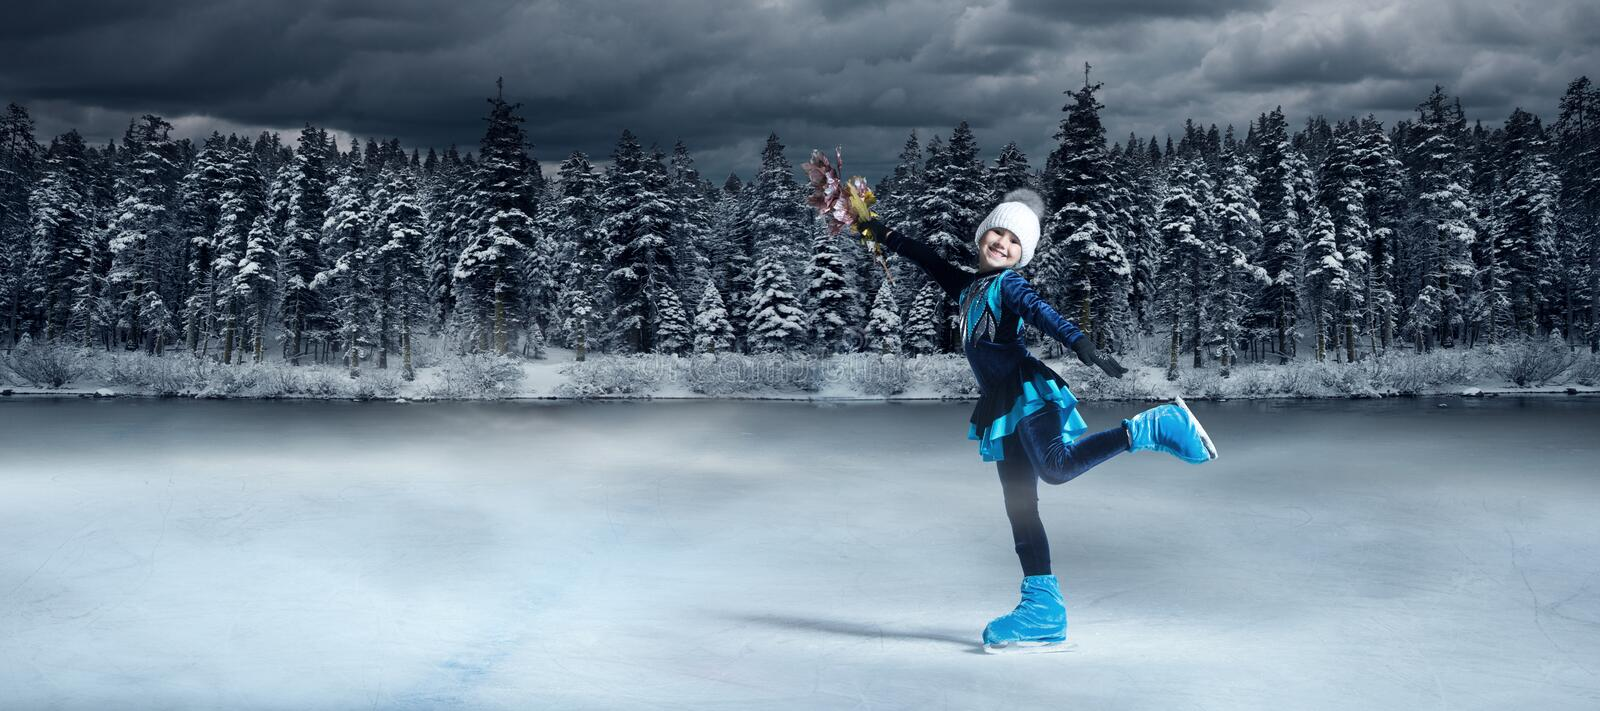 View of child  figure skater on winter lake royalty free stock photography